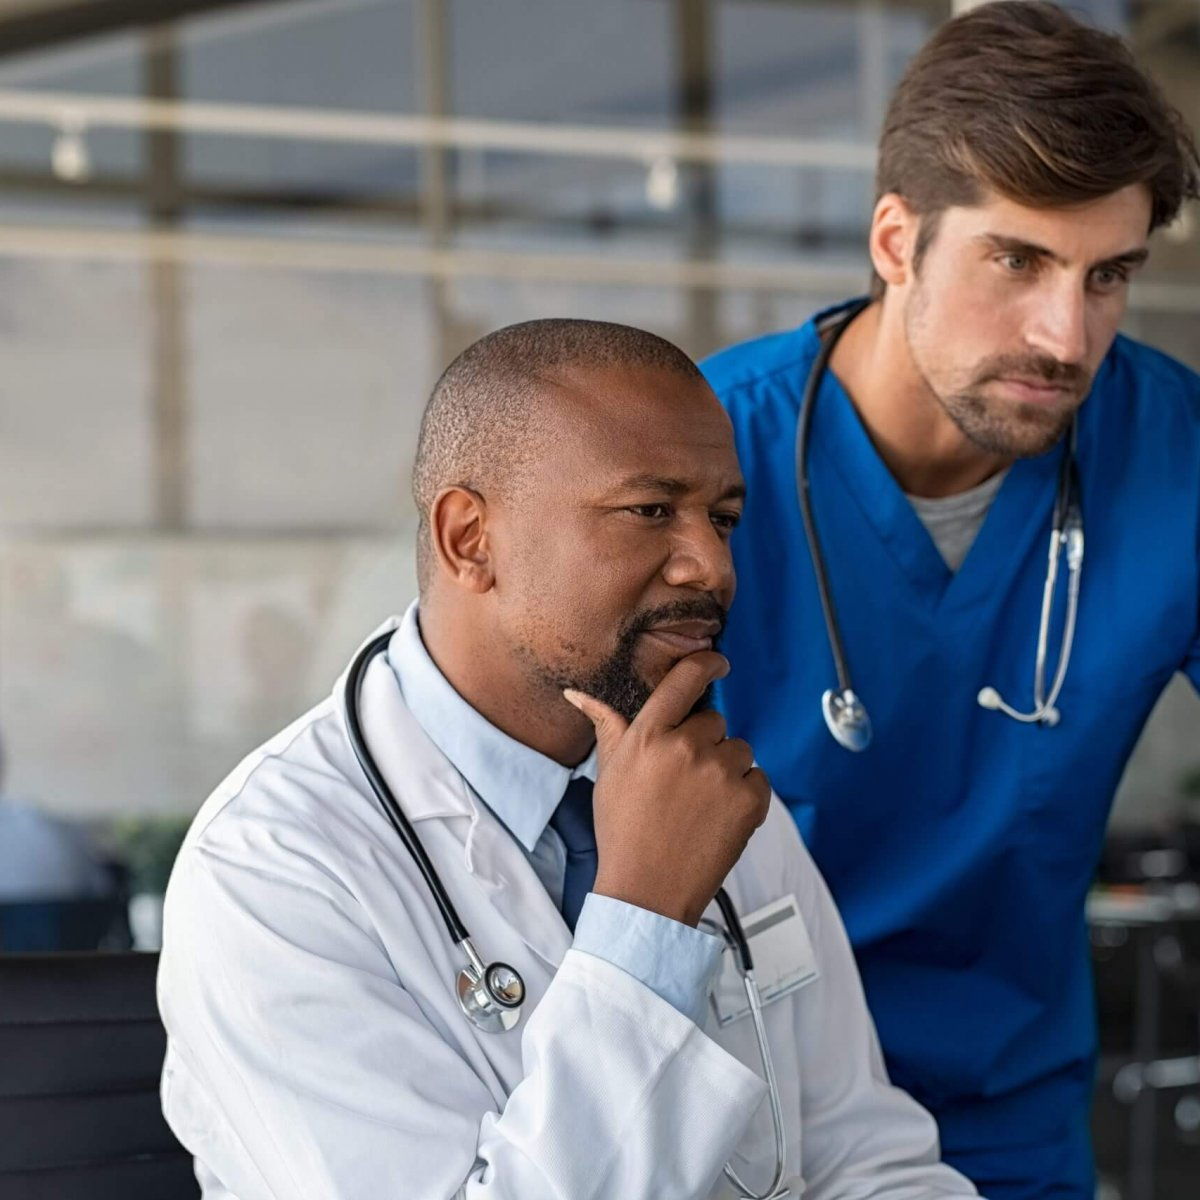 Mature african doctor and nurse analyze medical report on computer in office. Two healthcare workers in consultation using computer at hospital. Doctor discussing medical report with colleague at clinic.